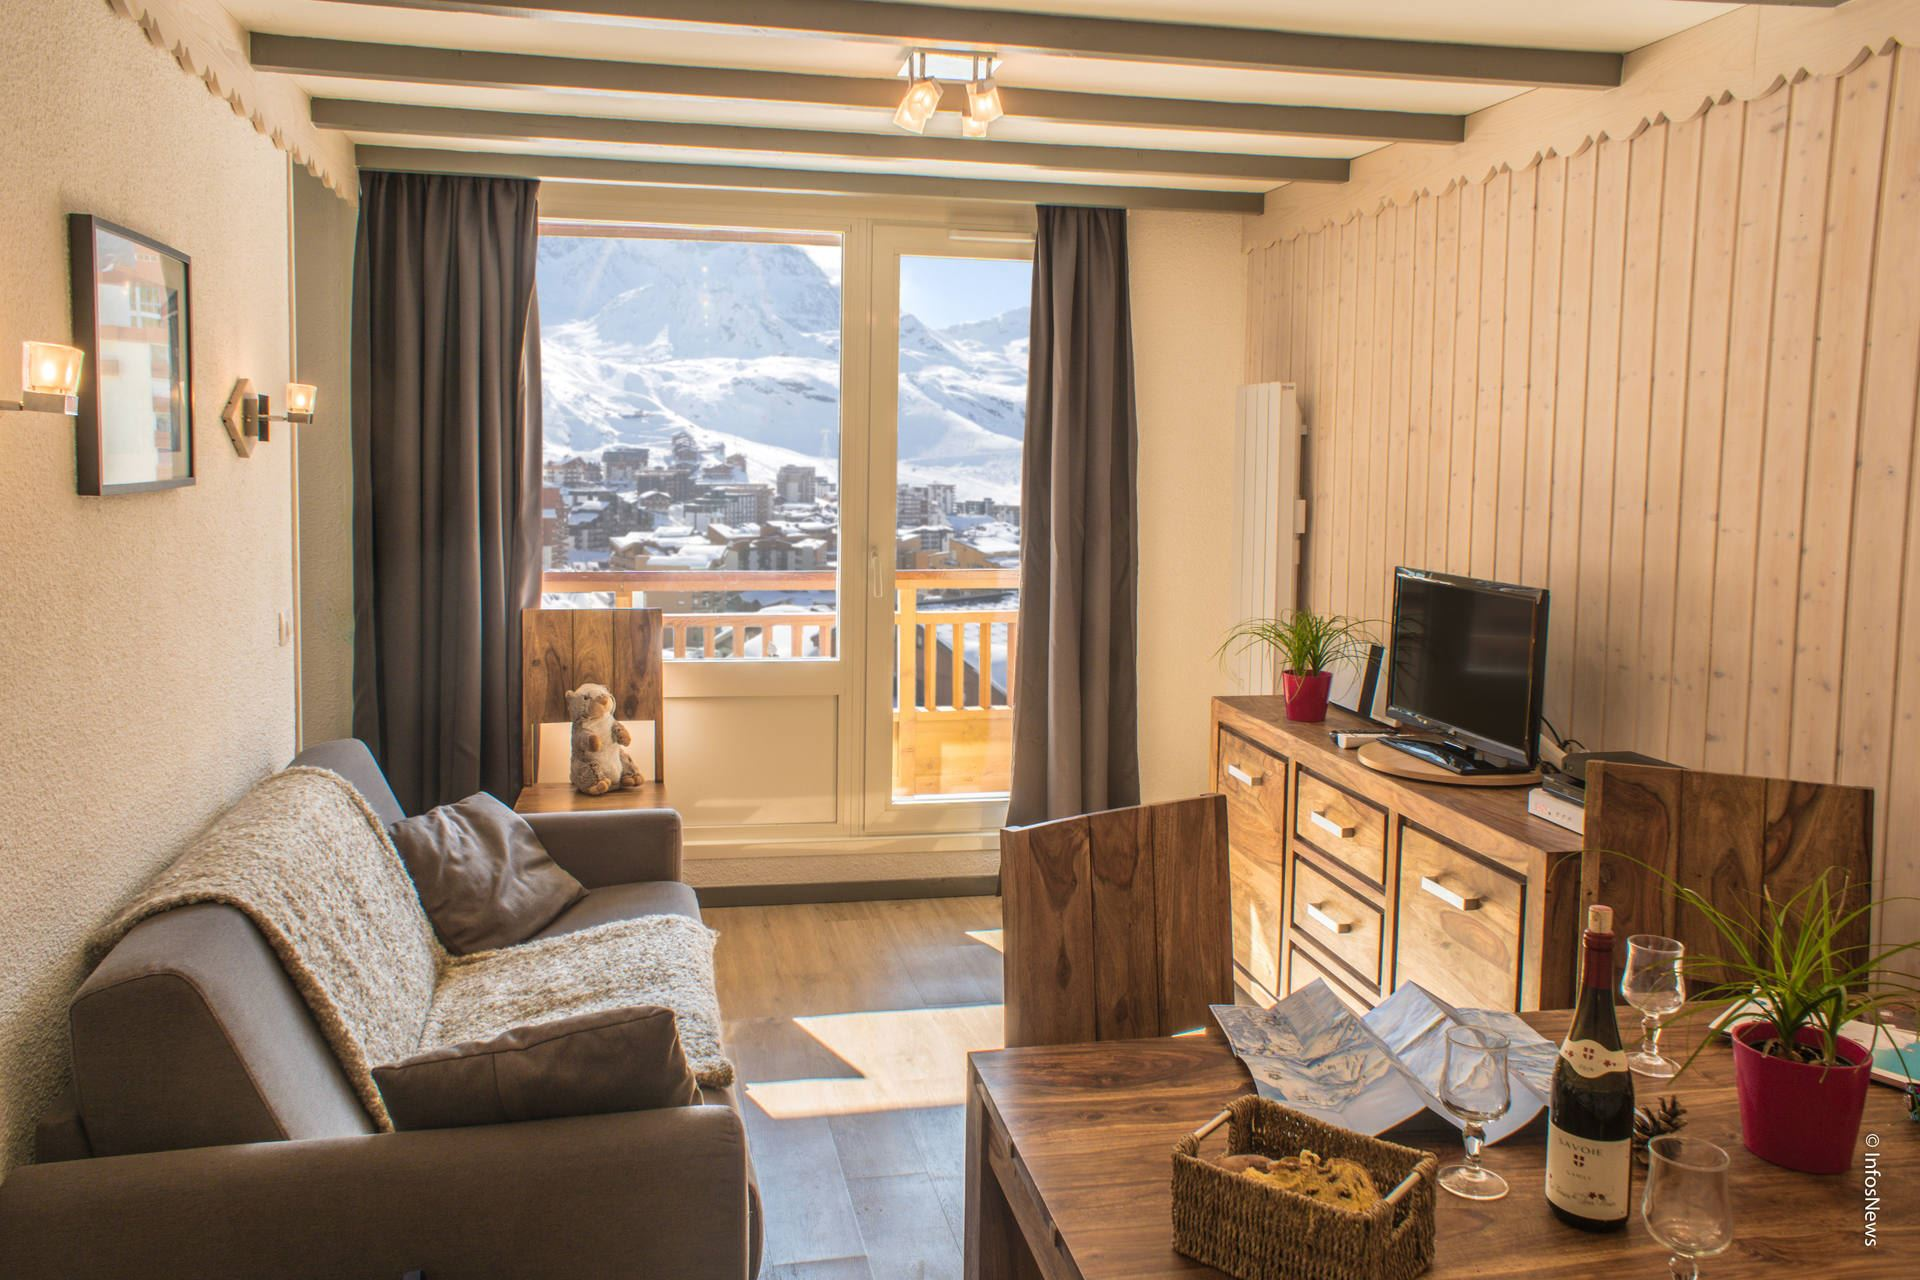 LAC BLANC 505 / 3 ROOMS 6 PERSONS - 4 GOLD SNOWFLAKES - VTI